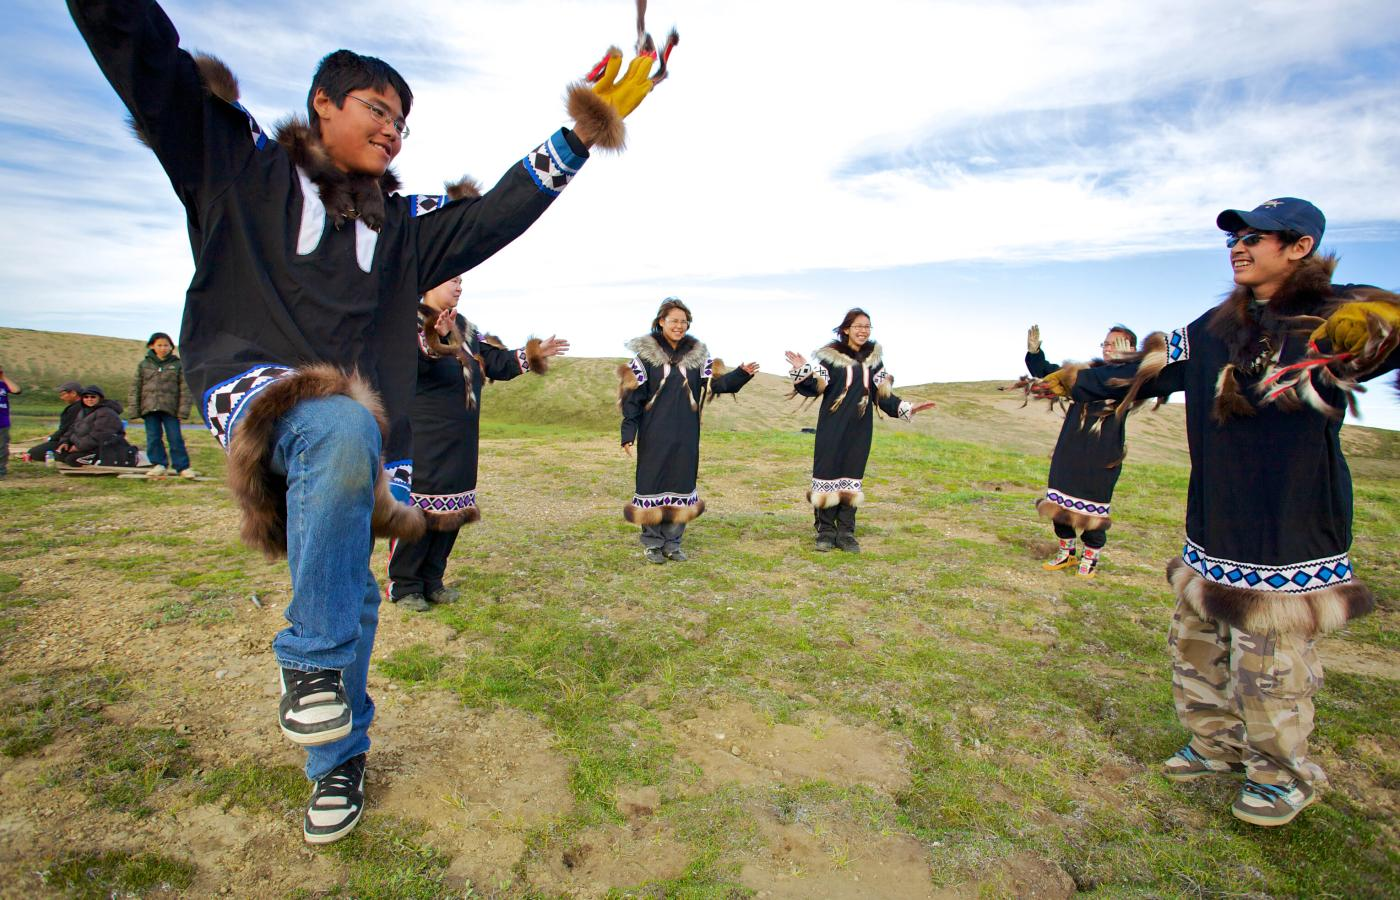 People dancing in teh grass with their arms up in the air on National Indigenous Peoples Day, a statutory holiday in the NWT.